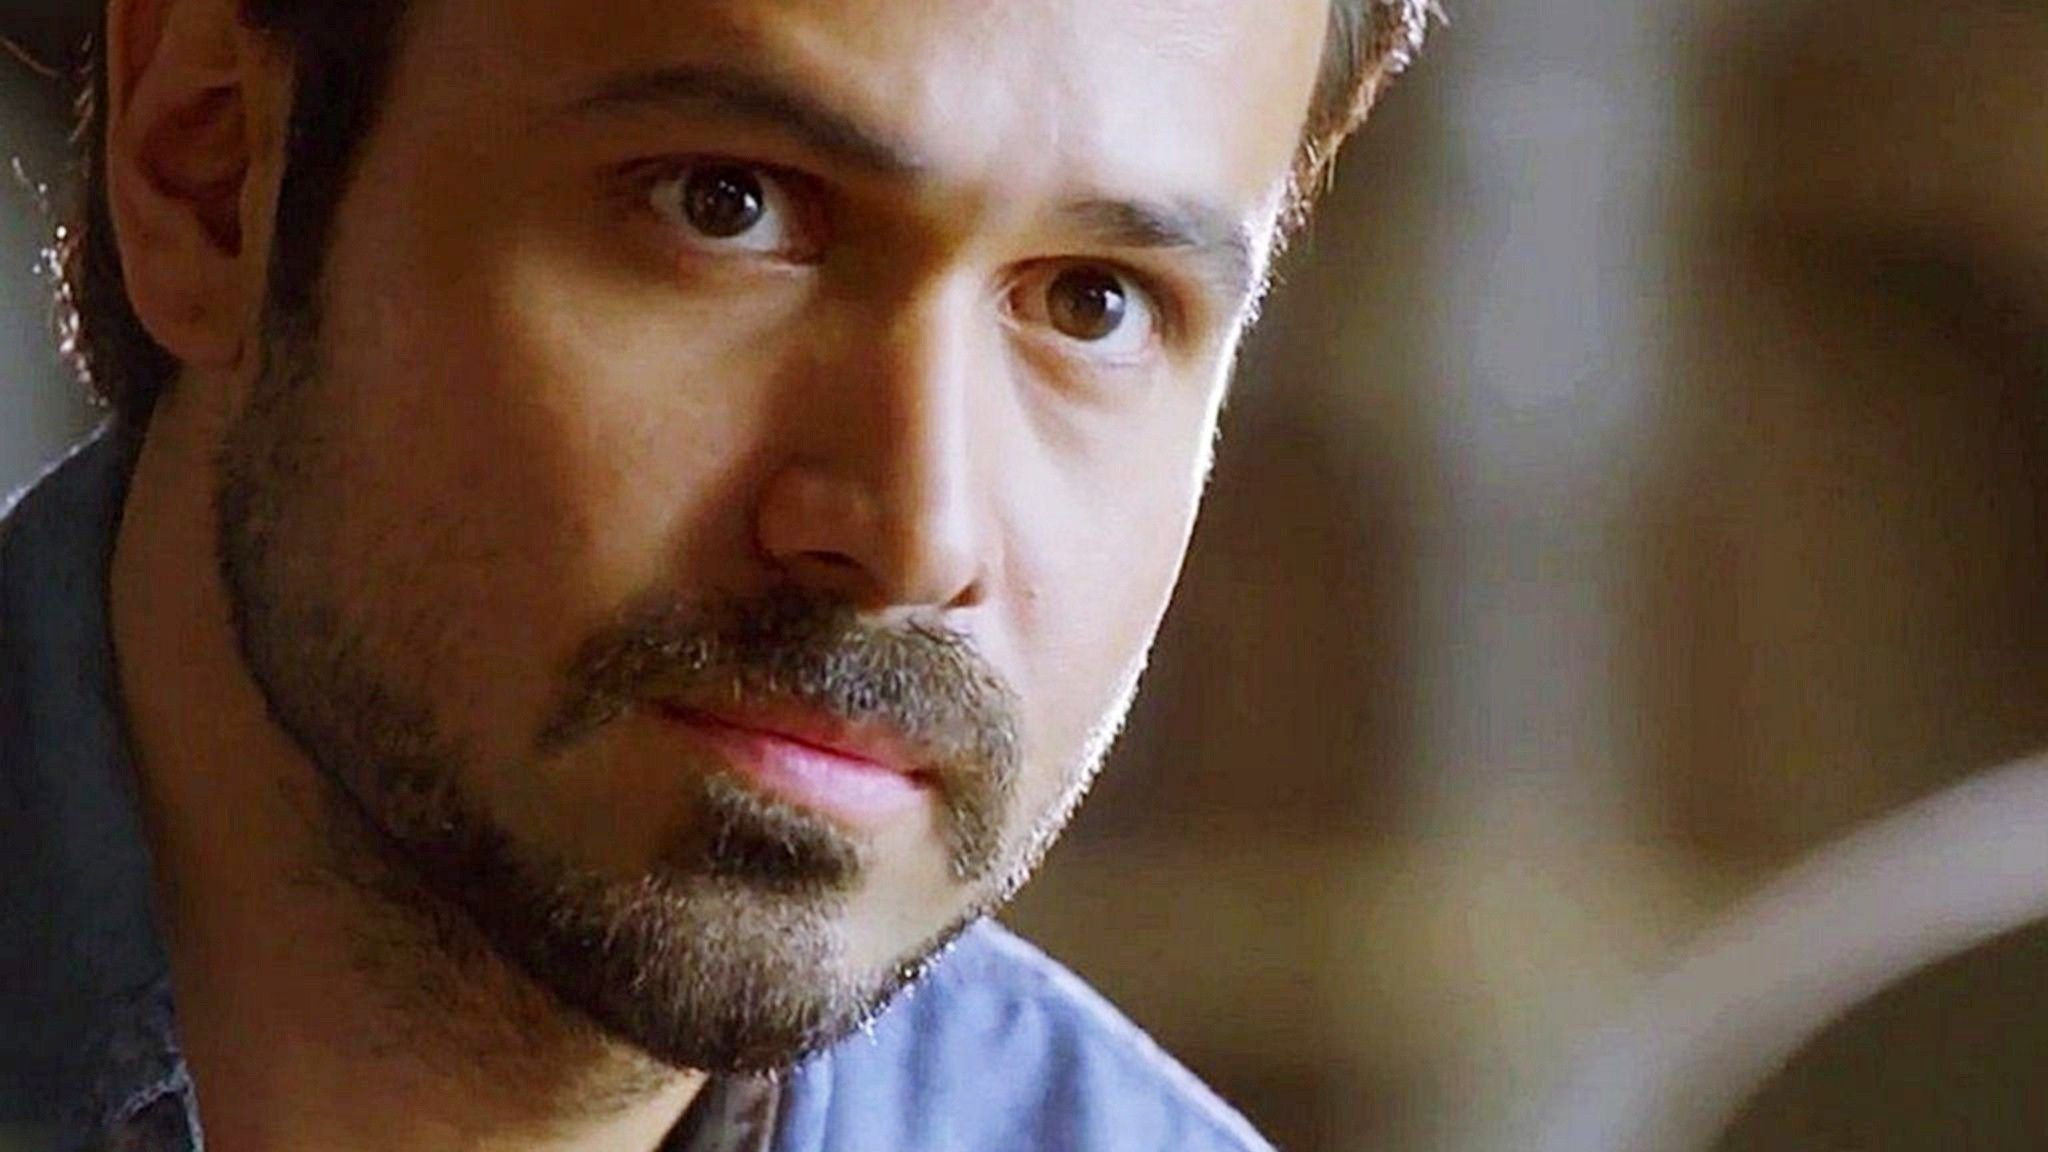 Handsome and Talented emraan hashmi wedding pictures forecasting to wear in summer in 2019